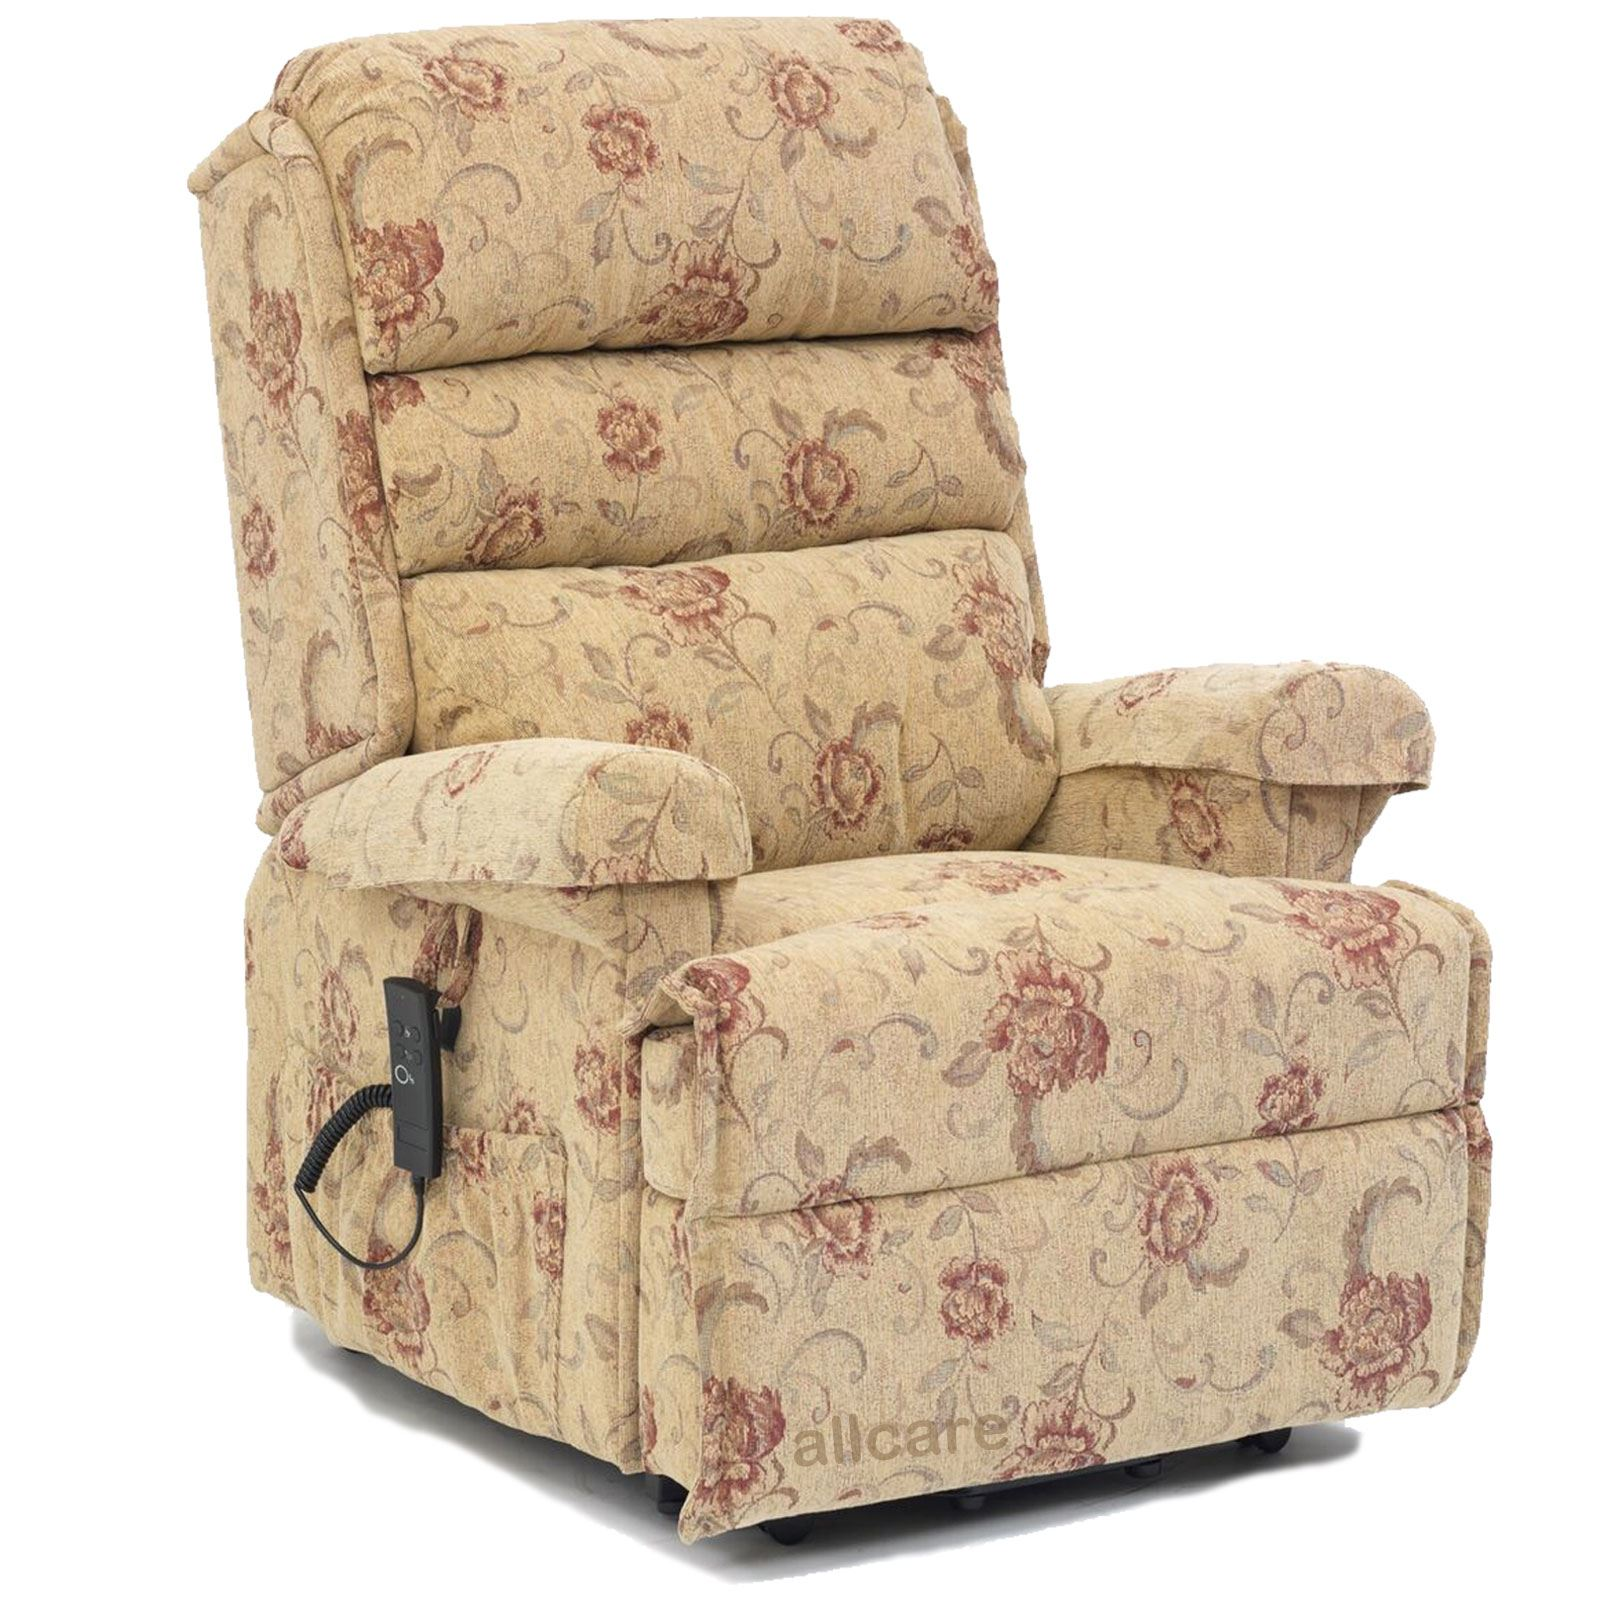 Dual Motor Riser Recliner Chair Restwell Baltimore Fabric Electric Riser Recliner Chair Dual Motor  sc 1 st  Athydirectory : restwell recliner chairs - islam-shia.org